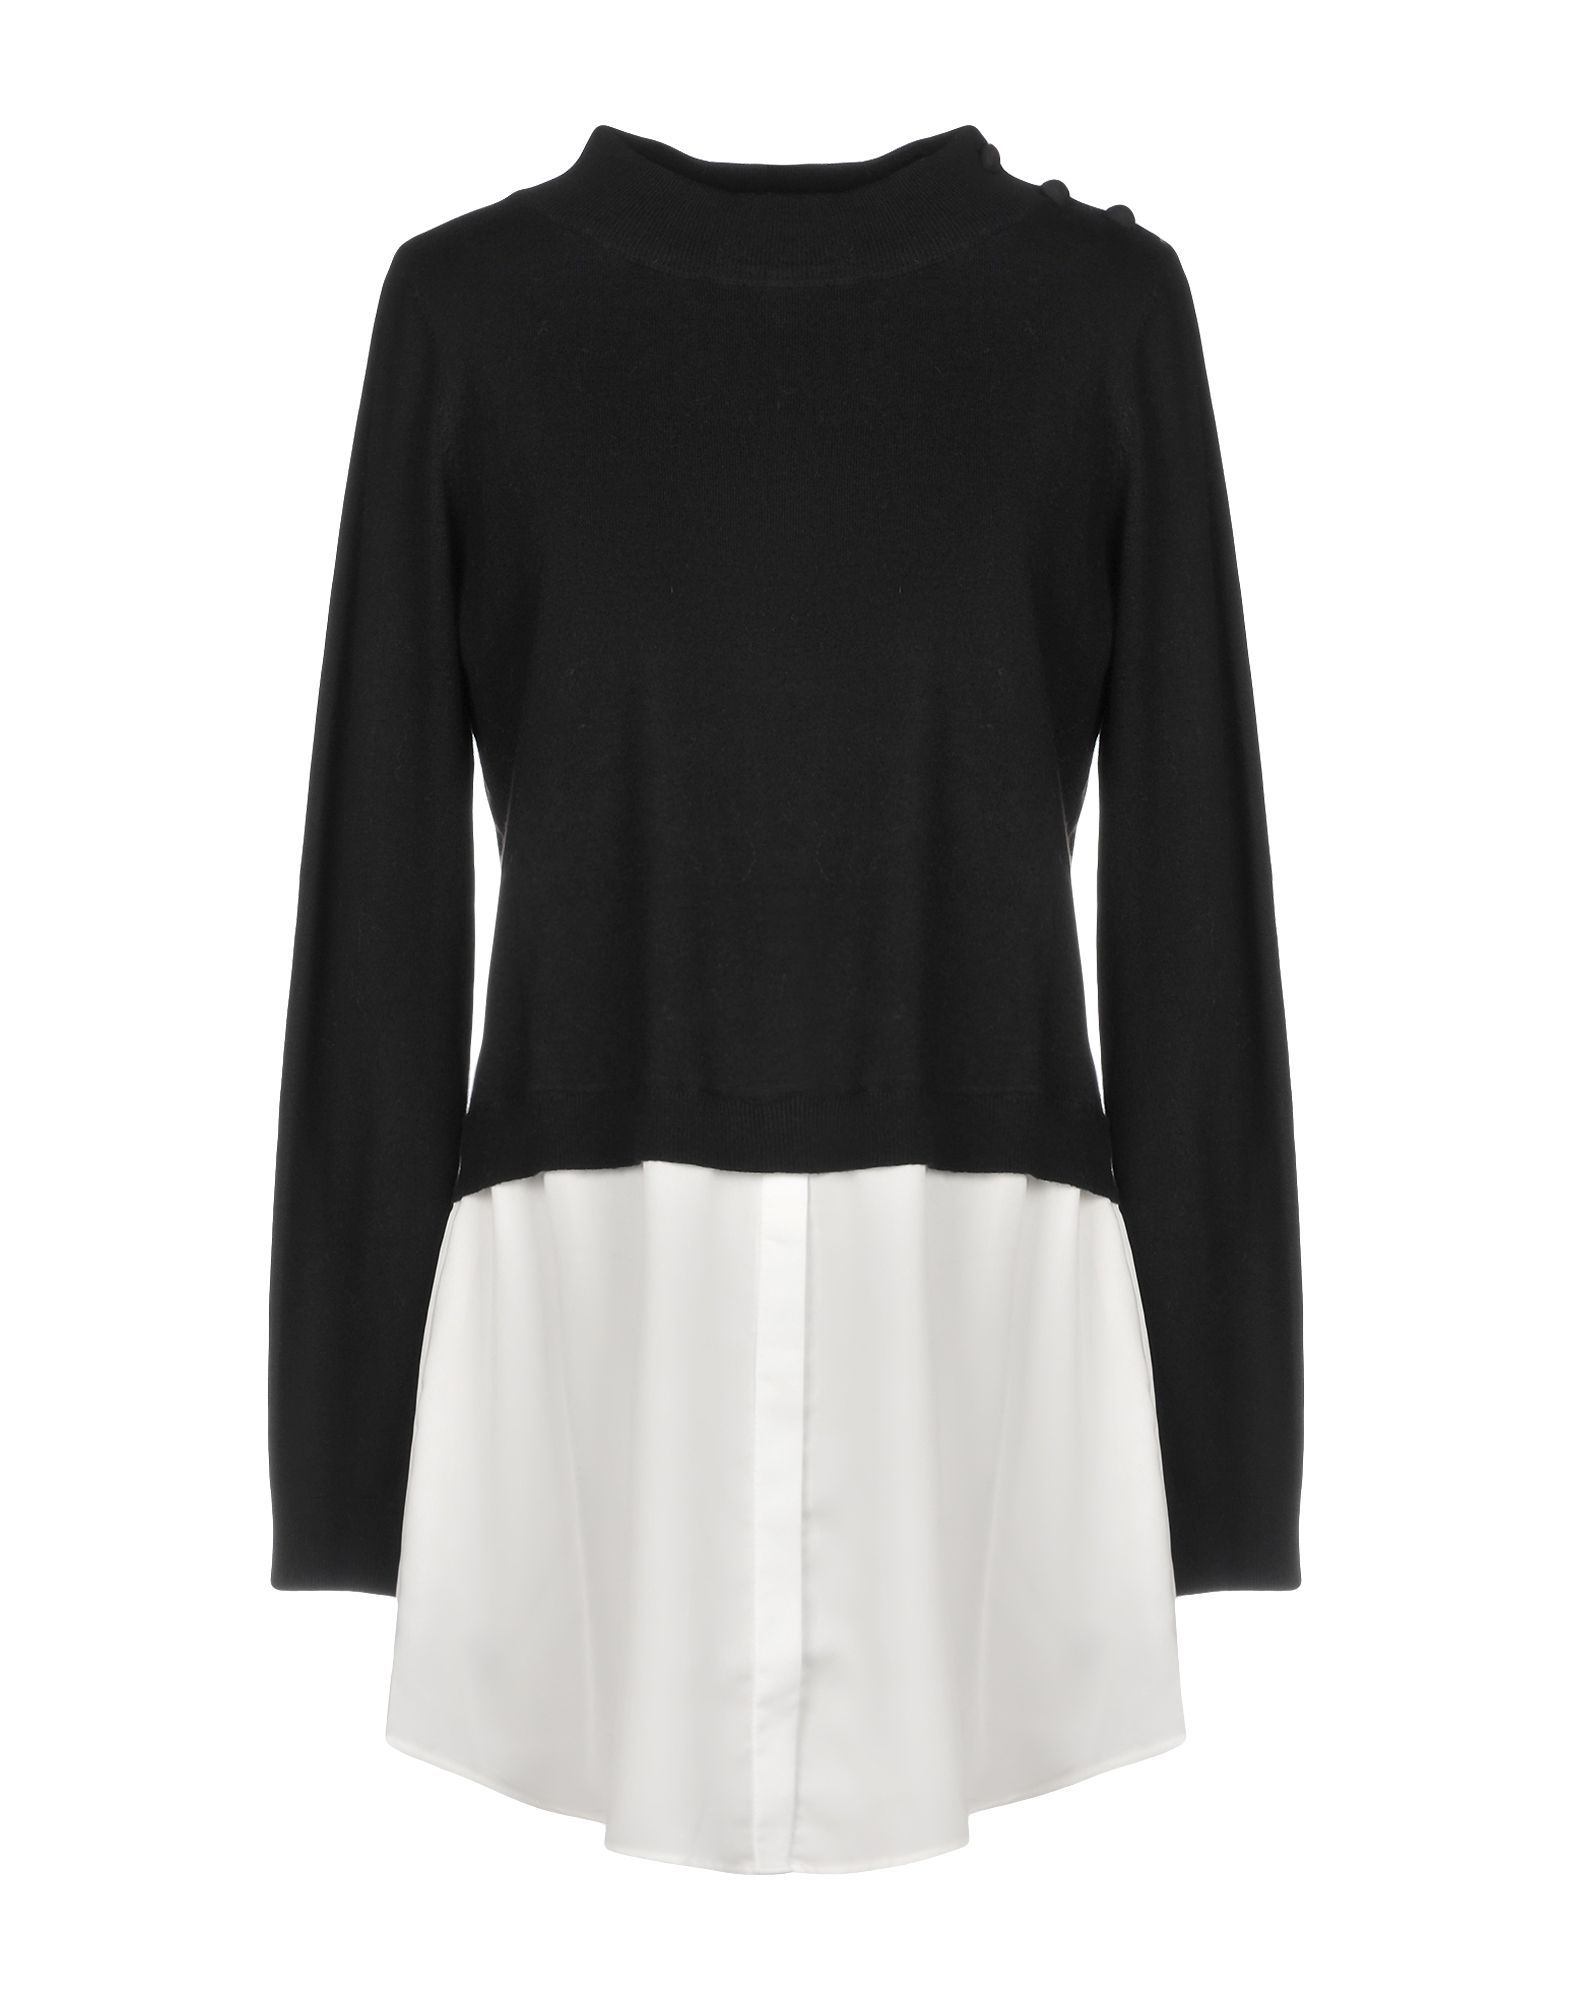 Scee By Twinset Black Cotton Jumper With Satin Insert